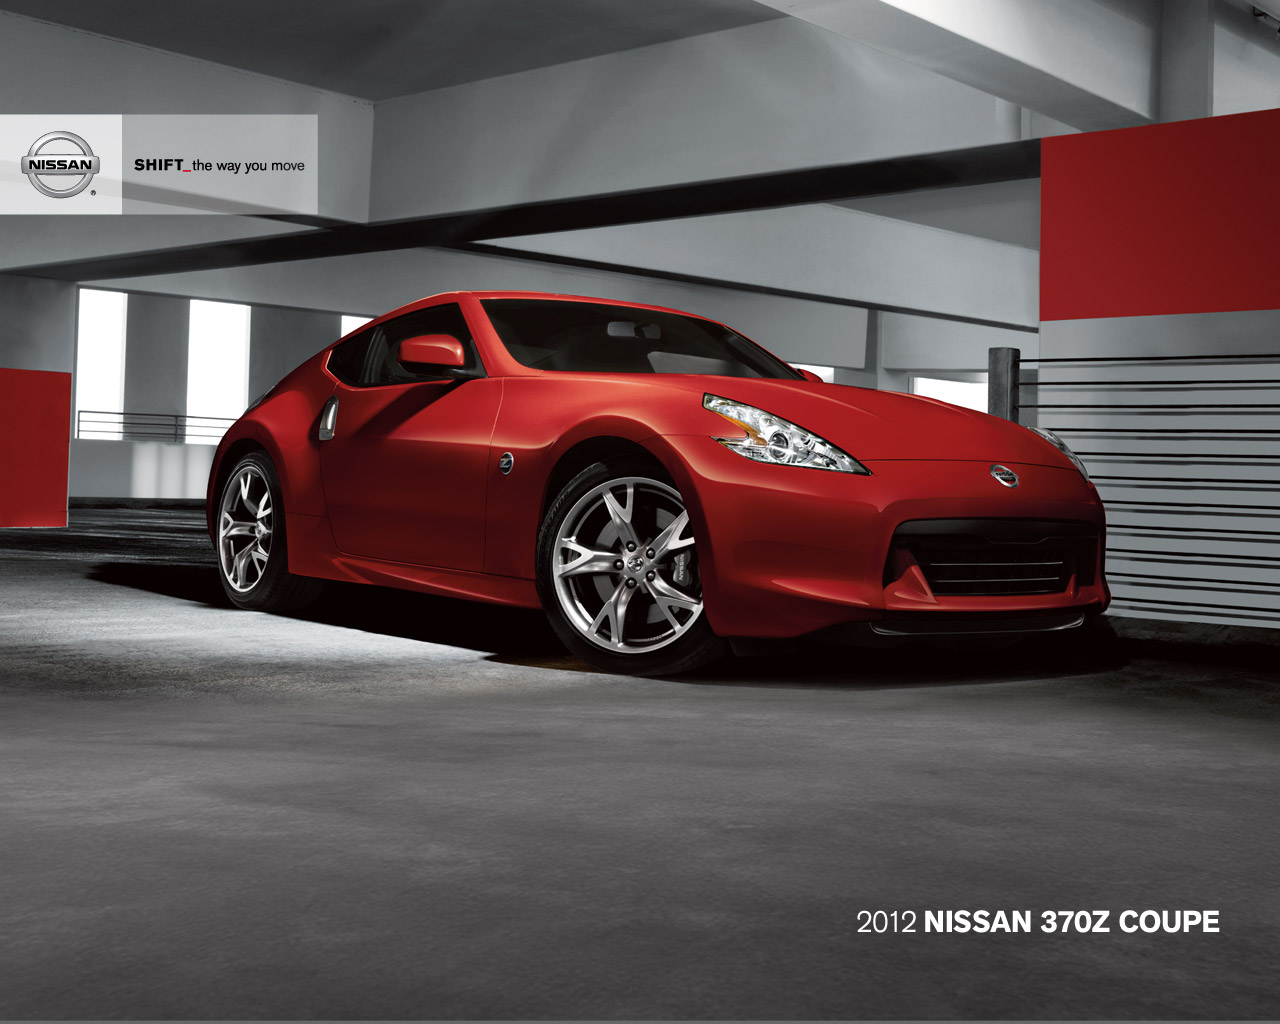 car pictures list for nissan 370z 2012 coupe bahrain yallamotor. Black Bedroom Furniture Sets. Home Design Ideas